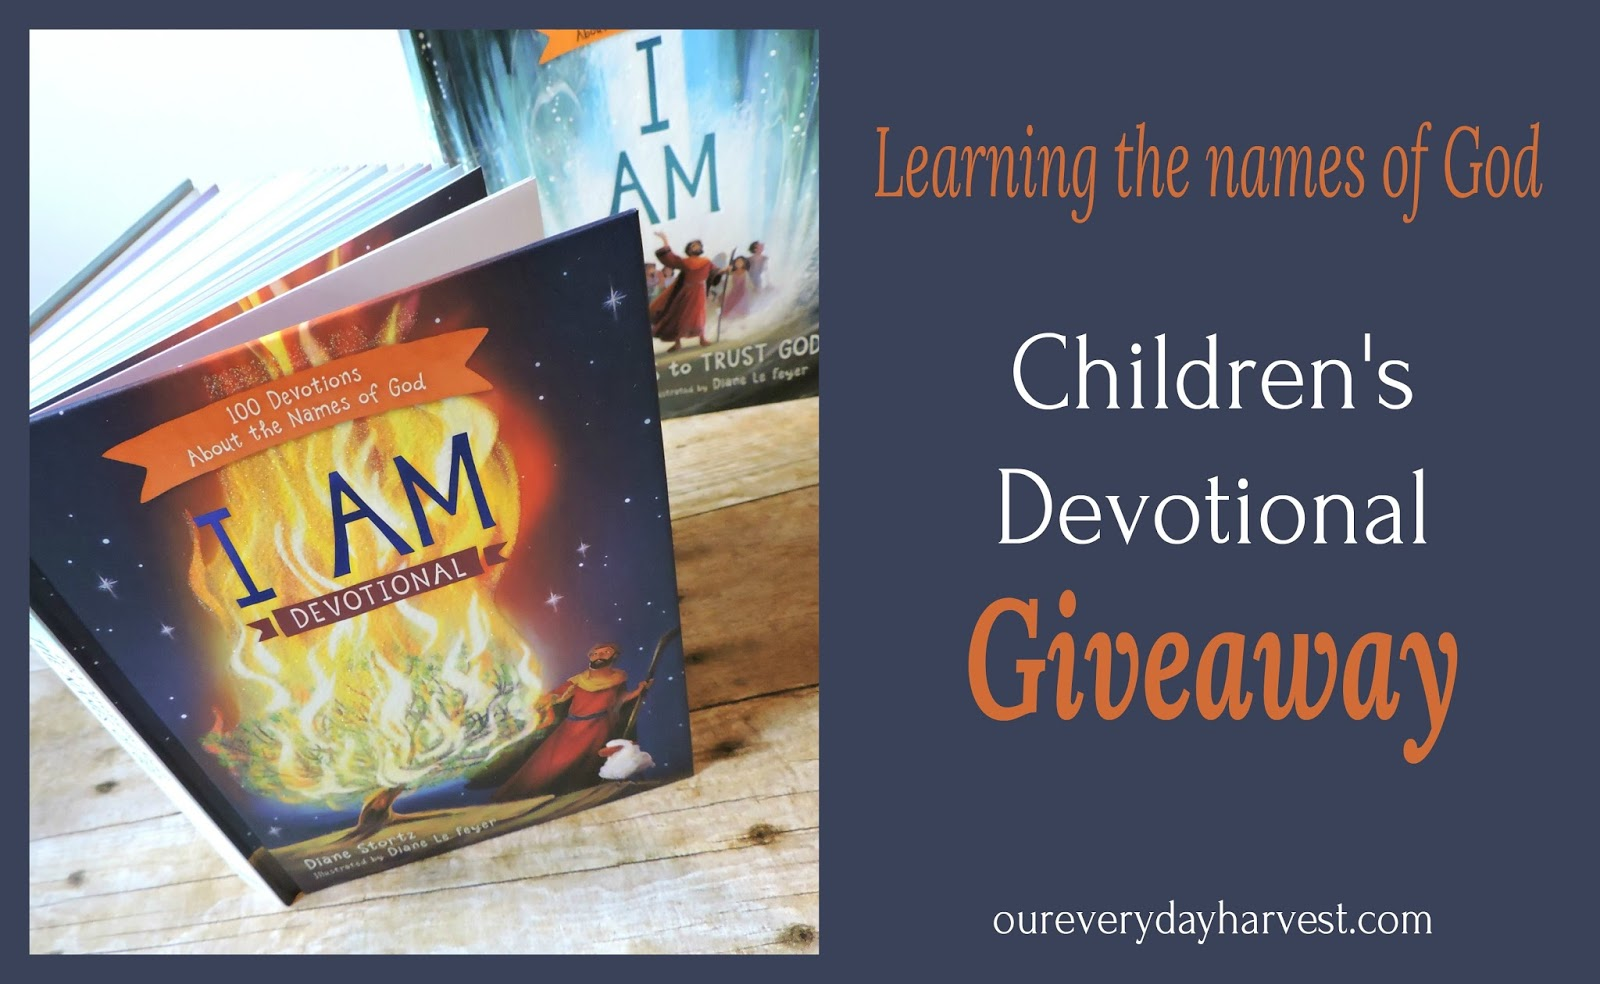 I AM Devotional {GIVEAWAY} – 100 Devotions About the Names